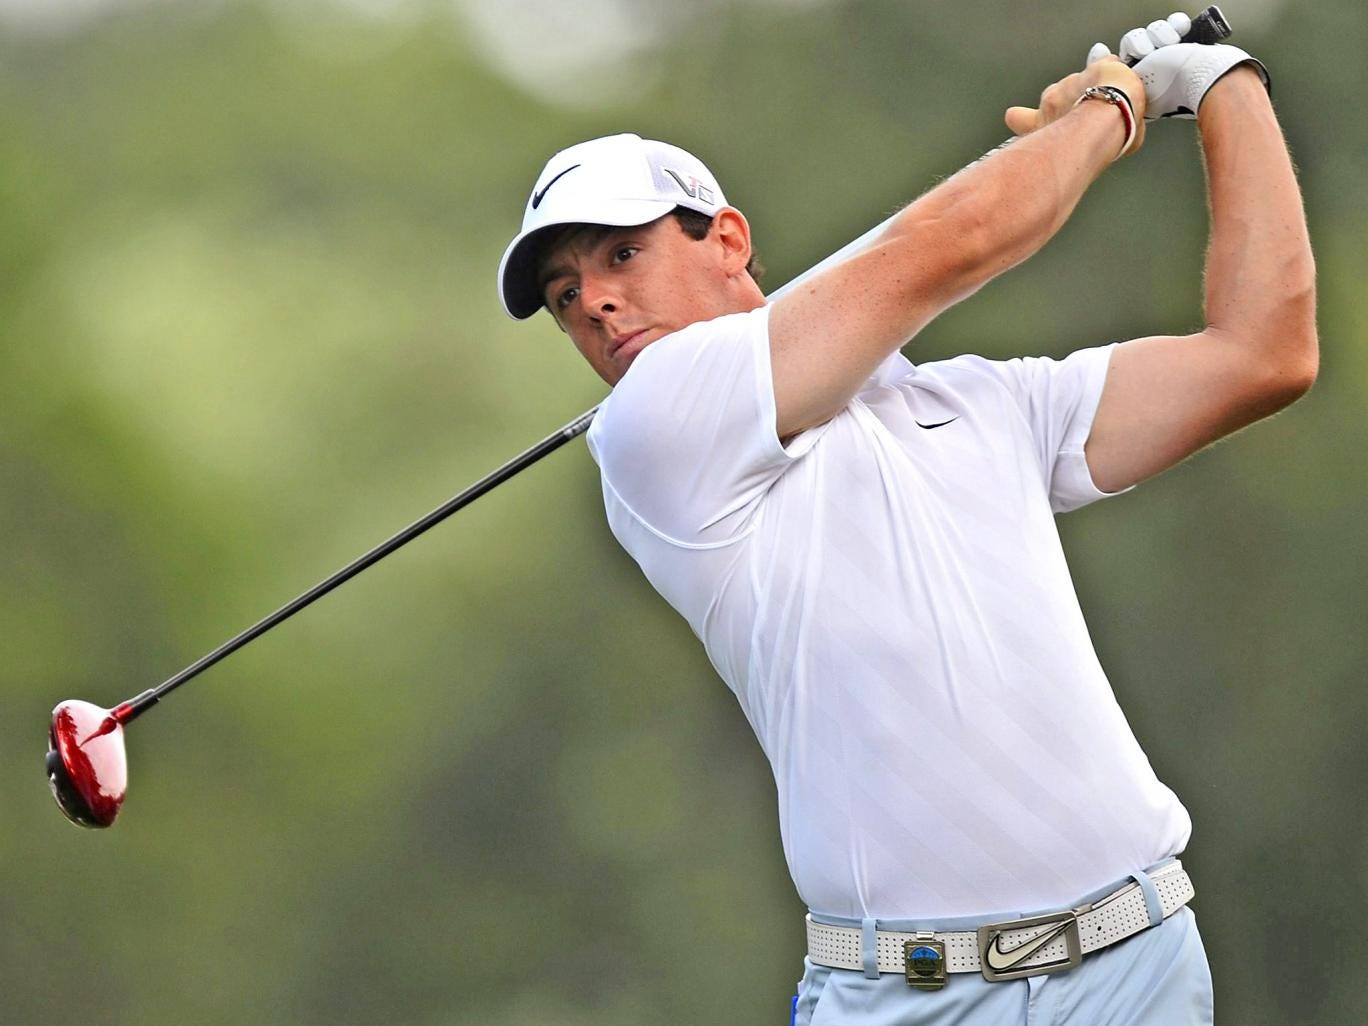 Rory McIlroy hits a tee shot at Oak Hill during practice